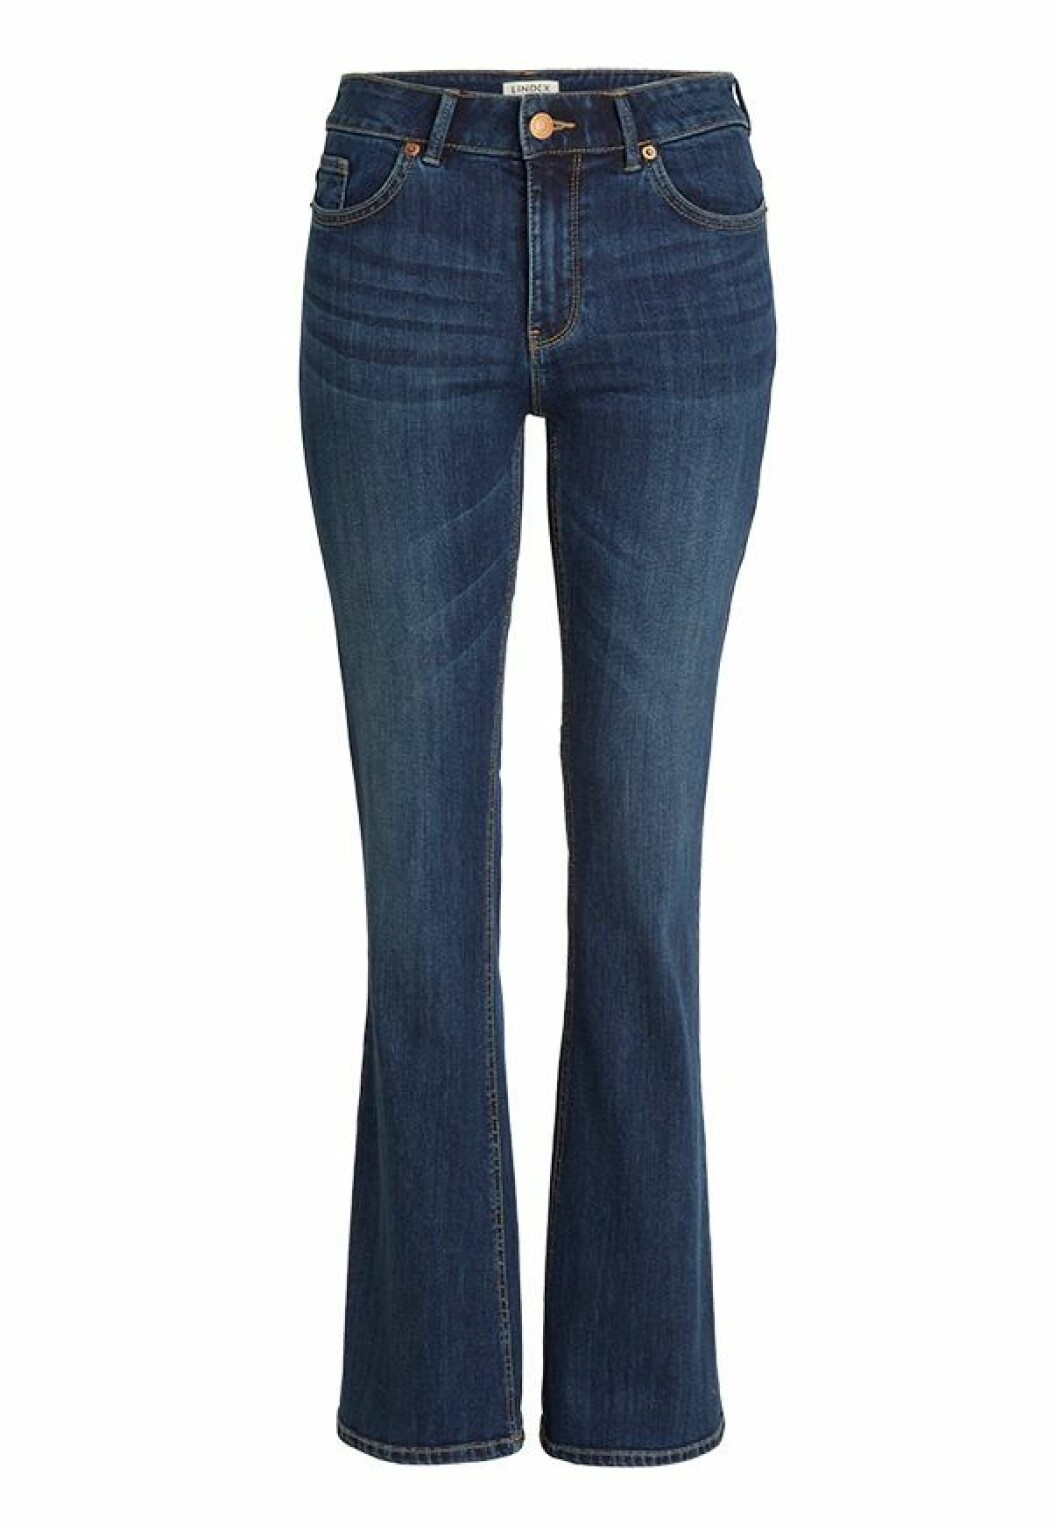 Jeans i boot cut-modell